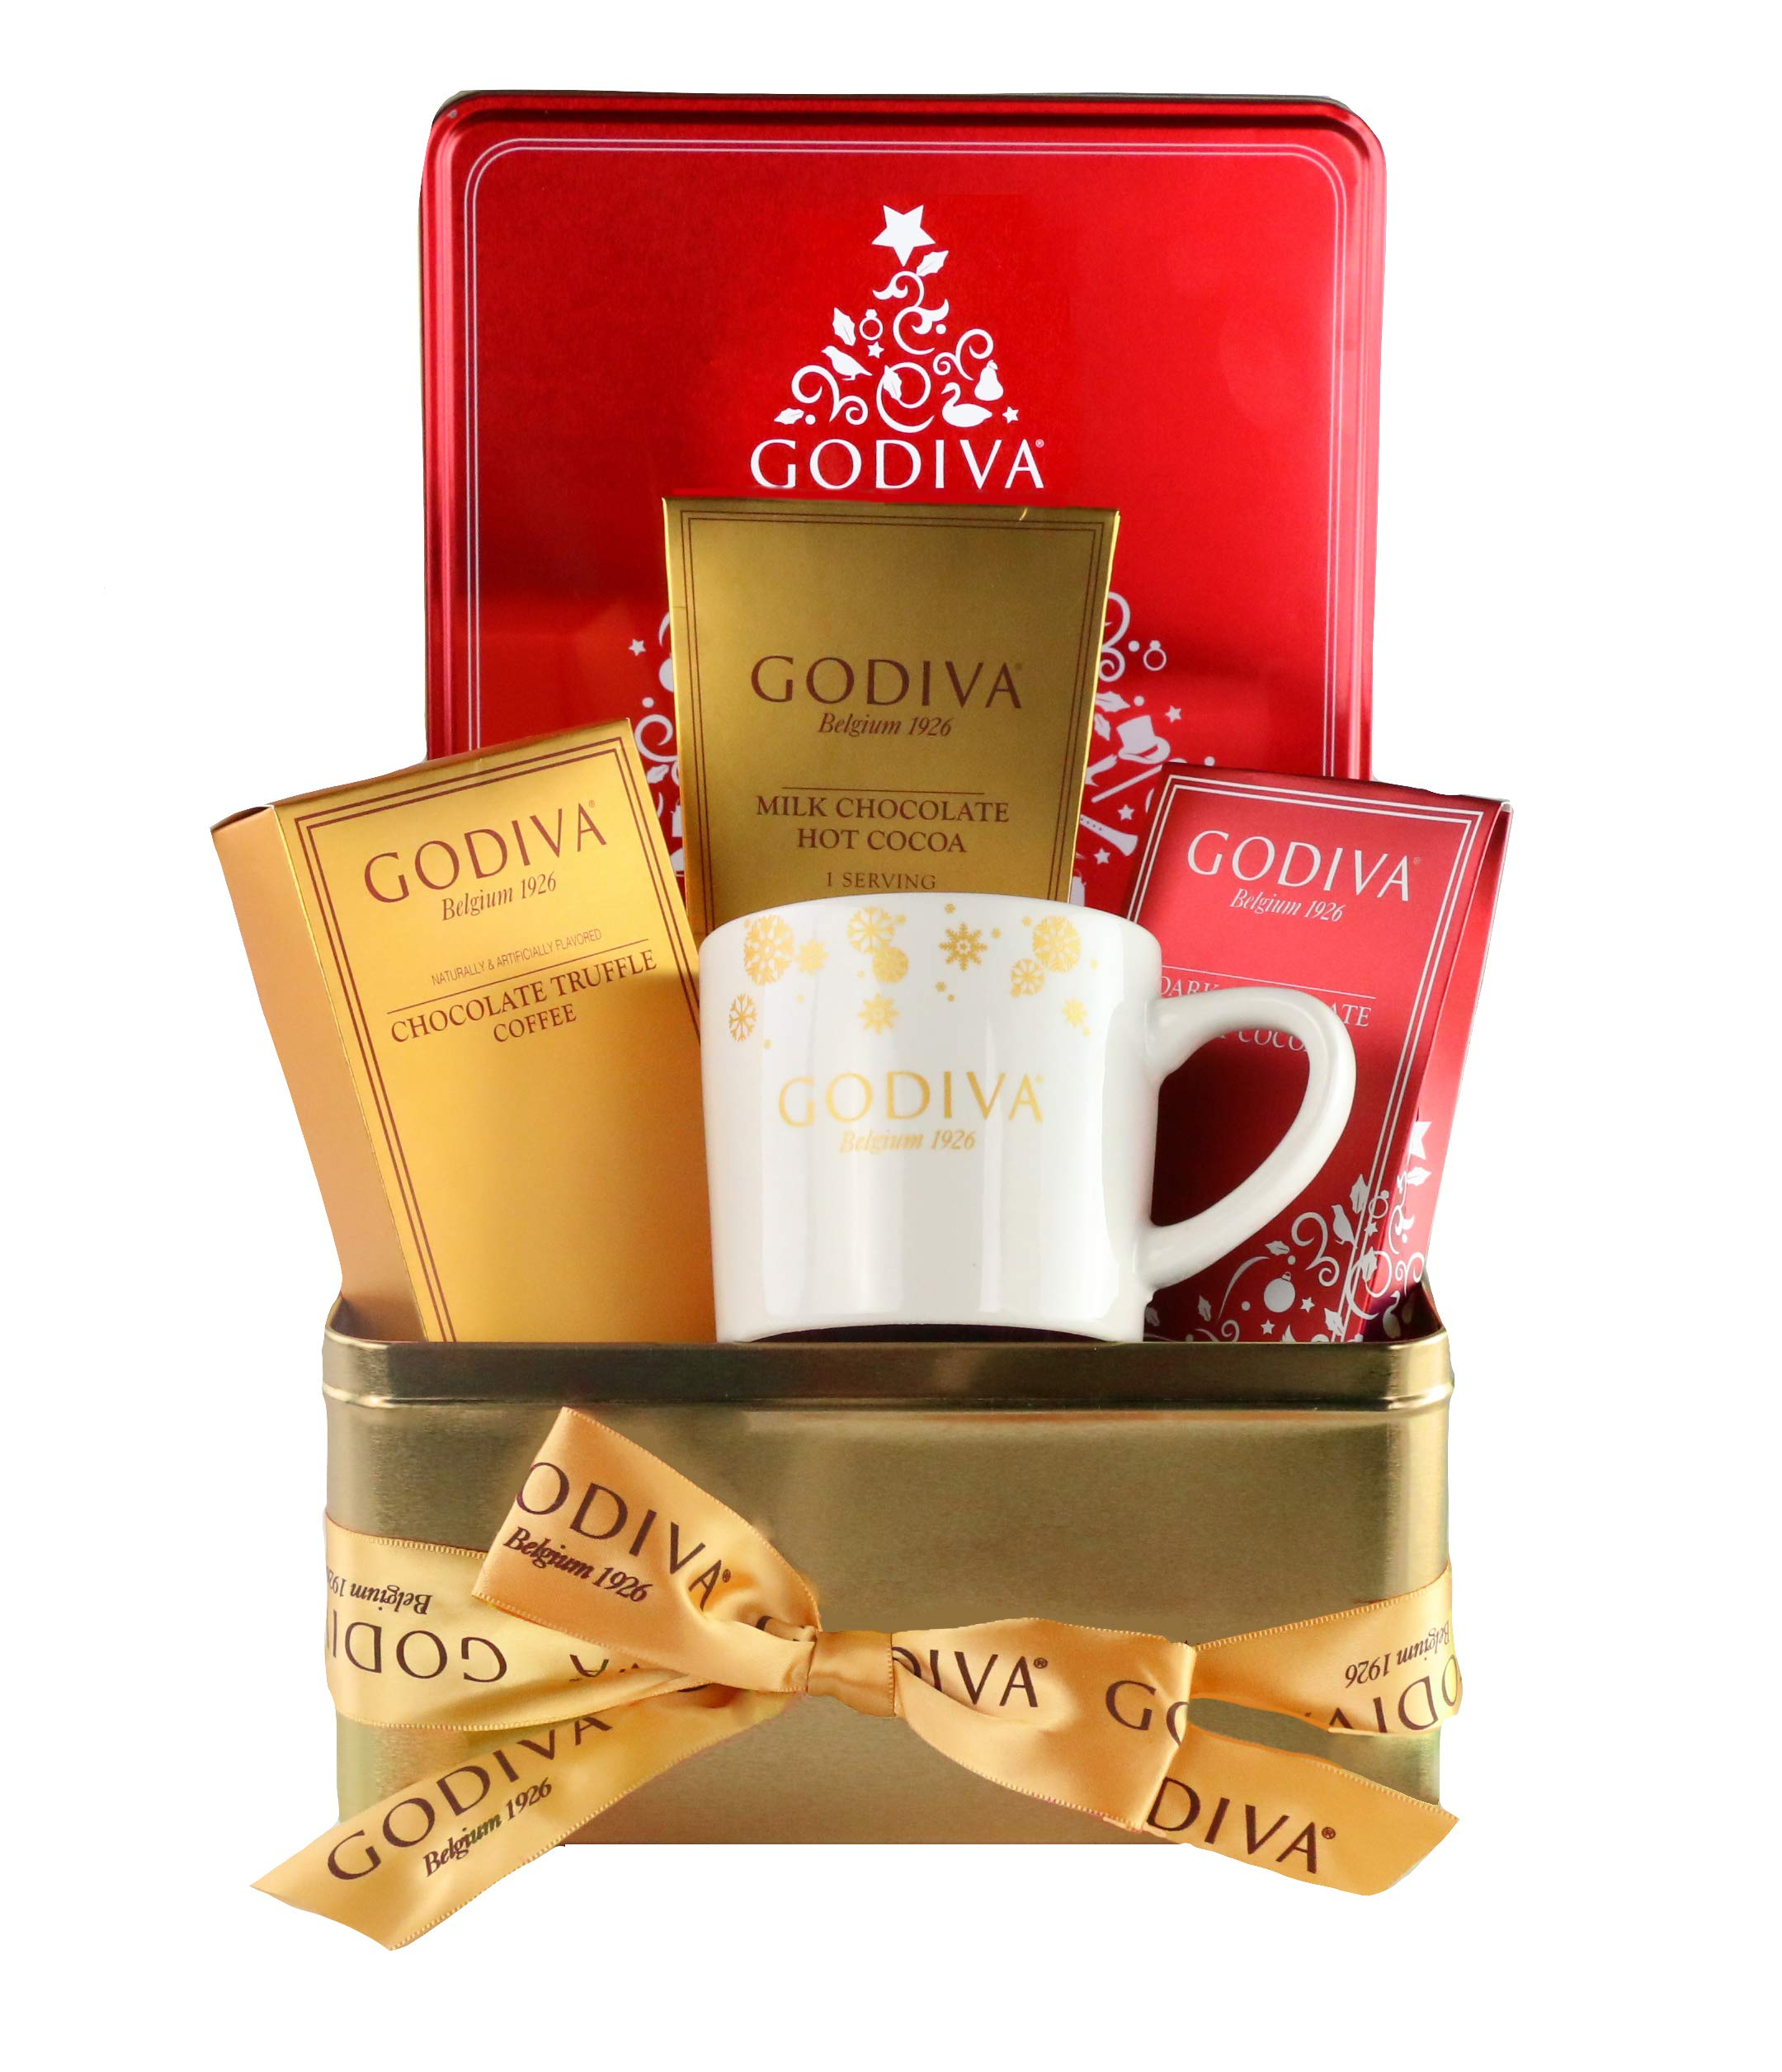 Thoughtfully Gifts, Godiva Hot Chocolate and Coffee Set, Includes Mug, 2 Flavor Packets of Cocoa and 1 Packet of Truffle Coffee by Thoughtfully